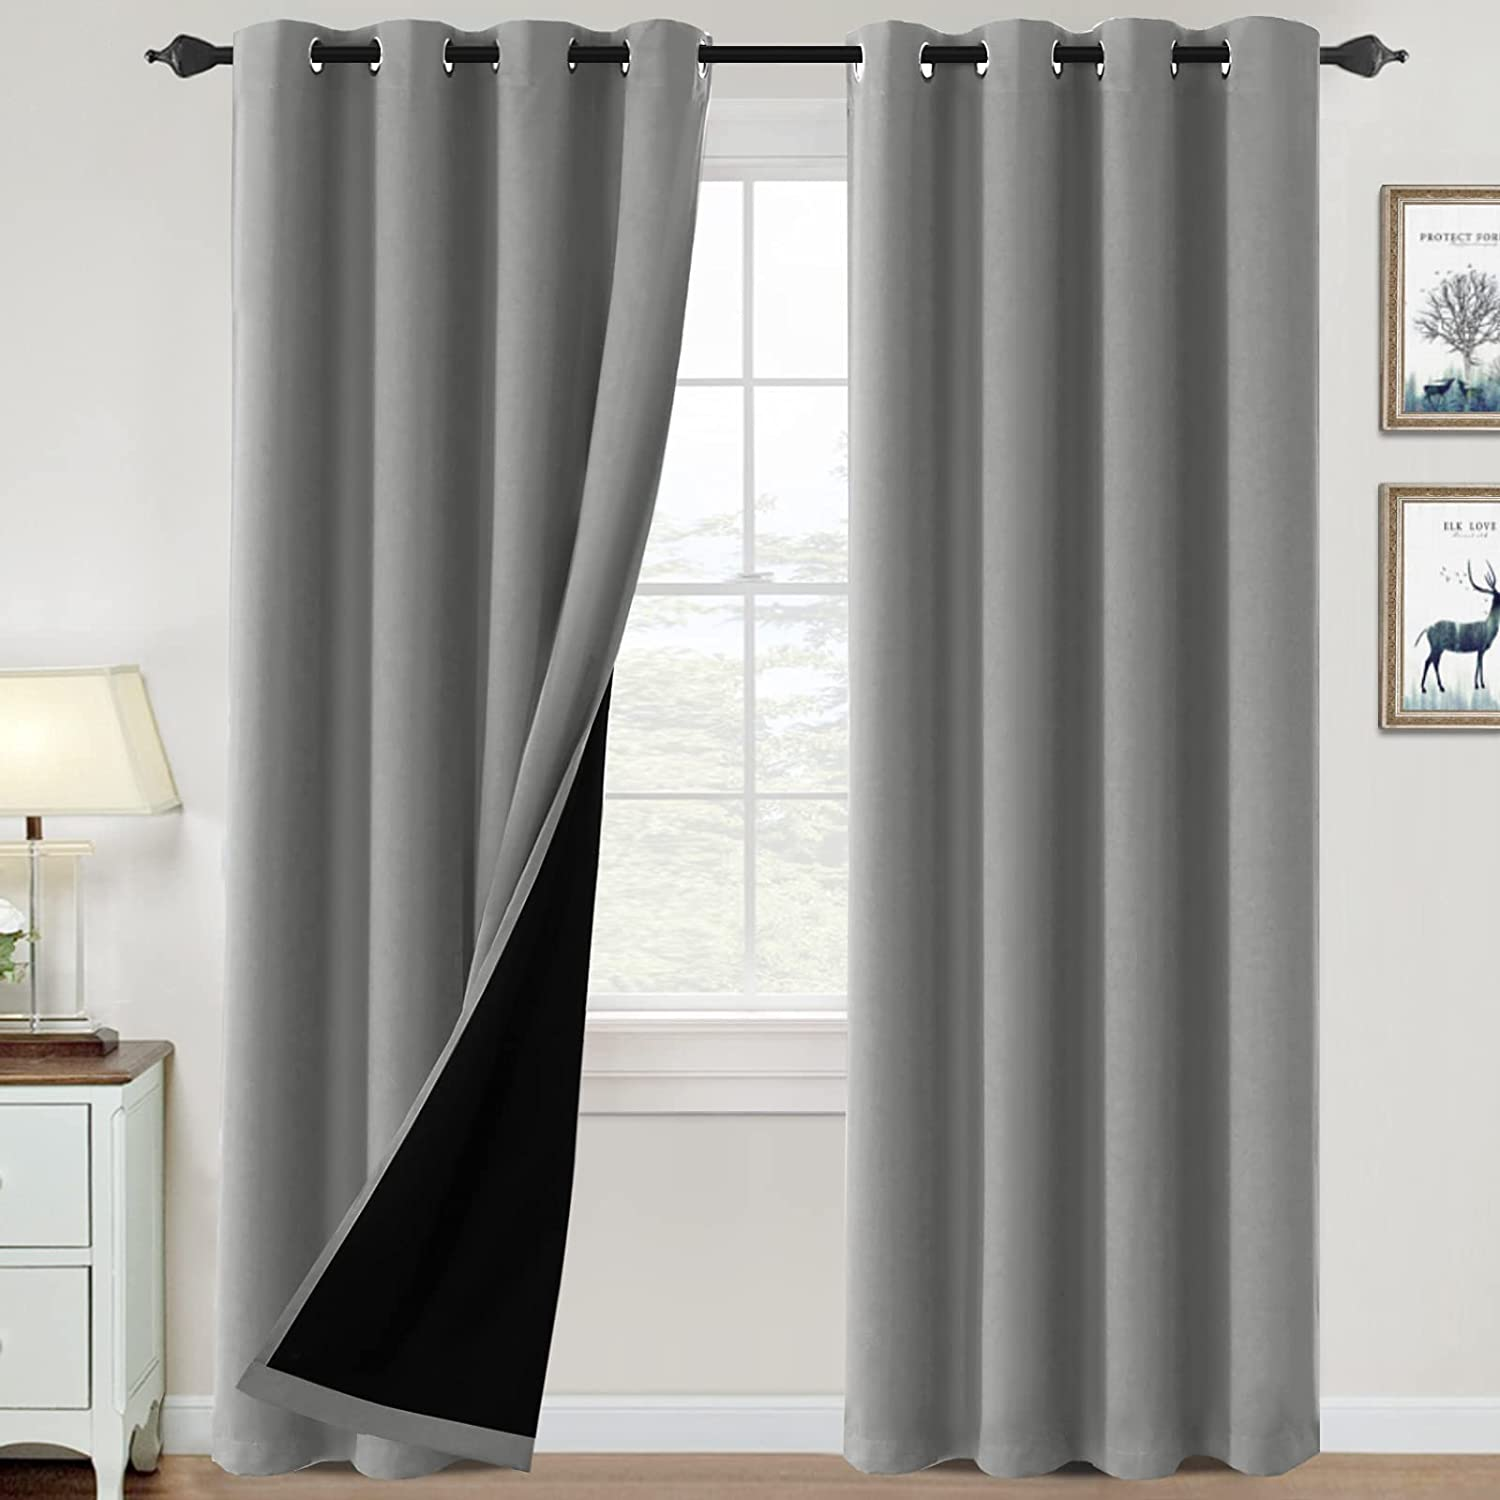 100% Discount is also underway Blackout Curtains for Cu Bedroom free Insulated Thermal